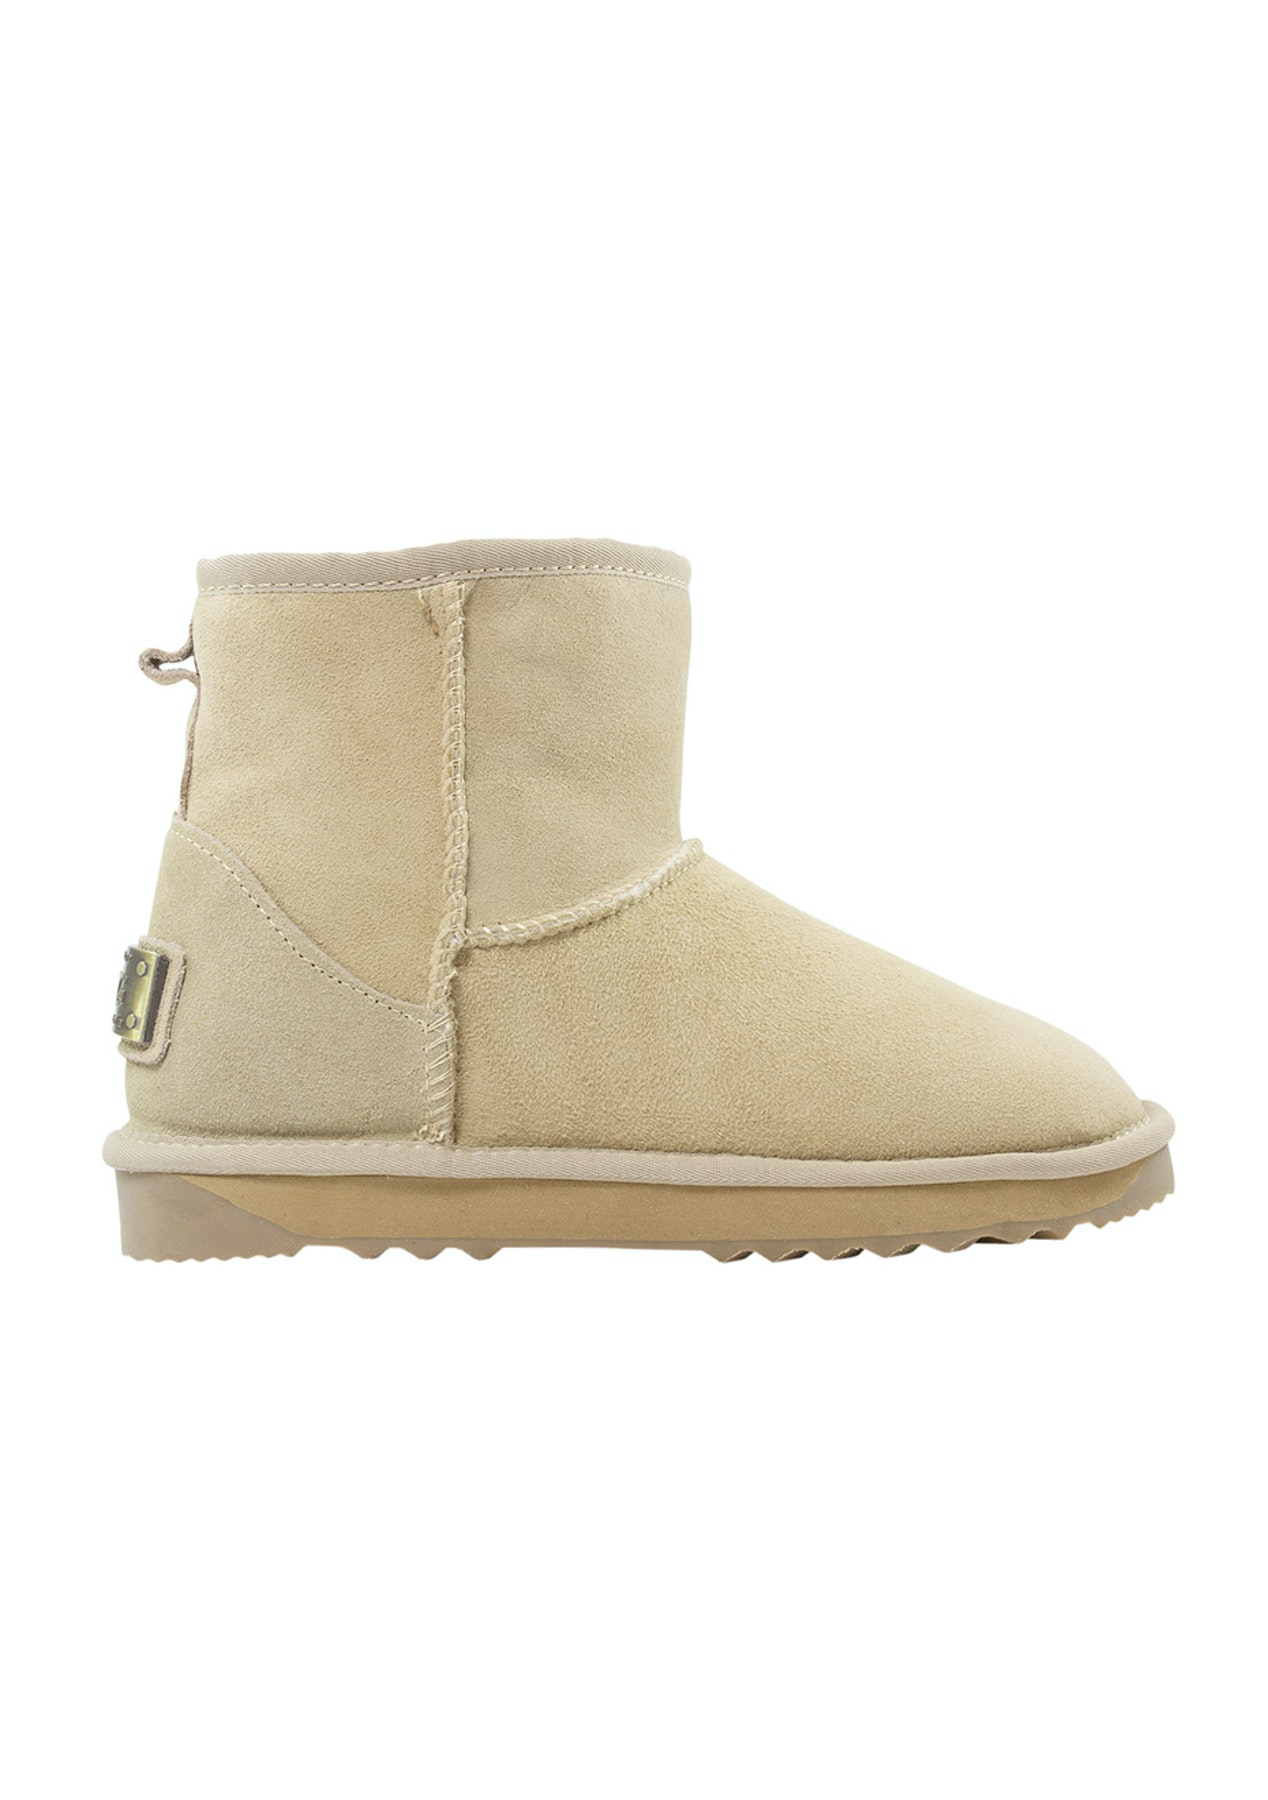 3e4d60f2ed4 Ultra Short Classic Sand - Ugg Boots Sheepskin Made In Australia - Comfort  Me - Unisex Size 4-13